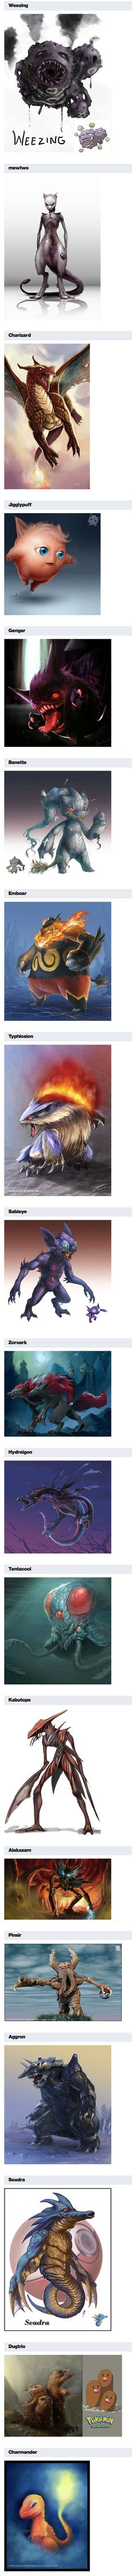 We have rounded up some realistic Pokemon character drawings that lean towards the creepy side, perfect for Halloween.